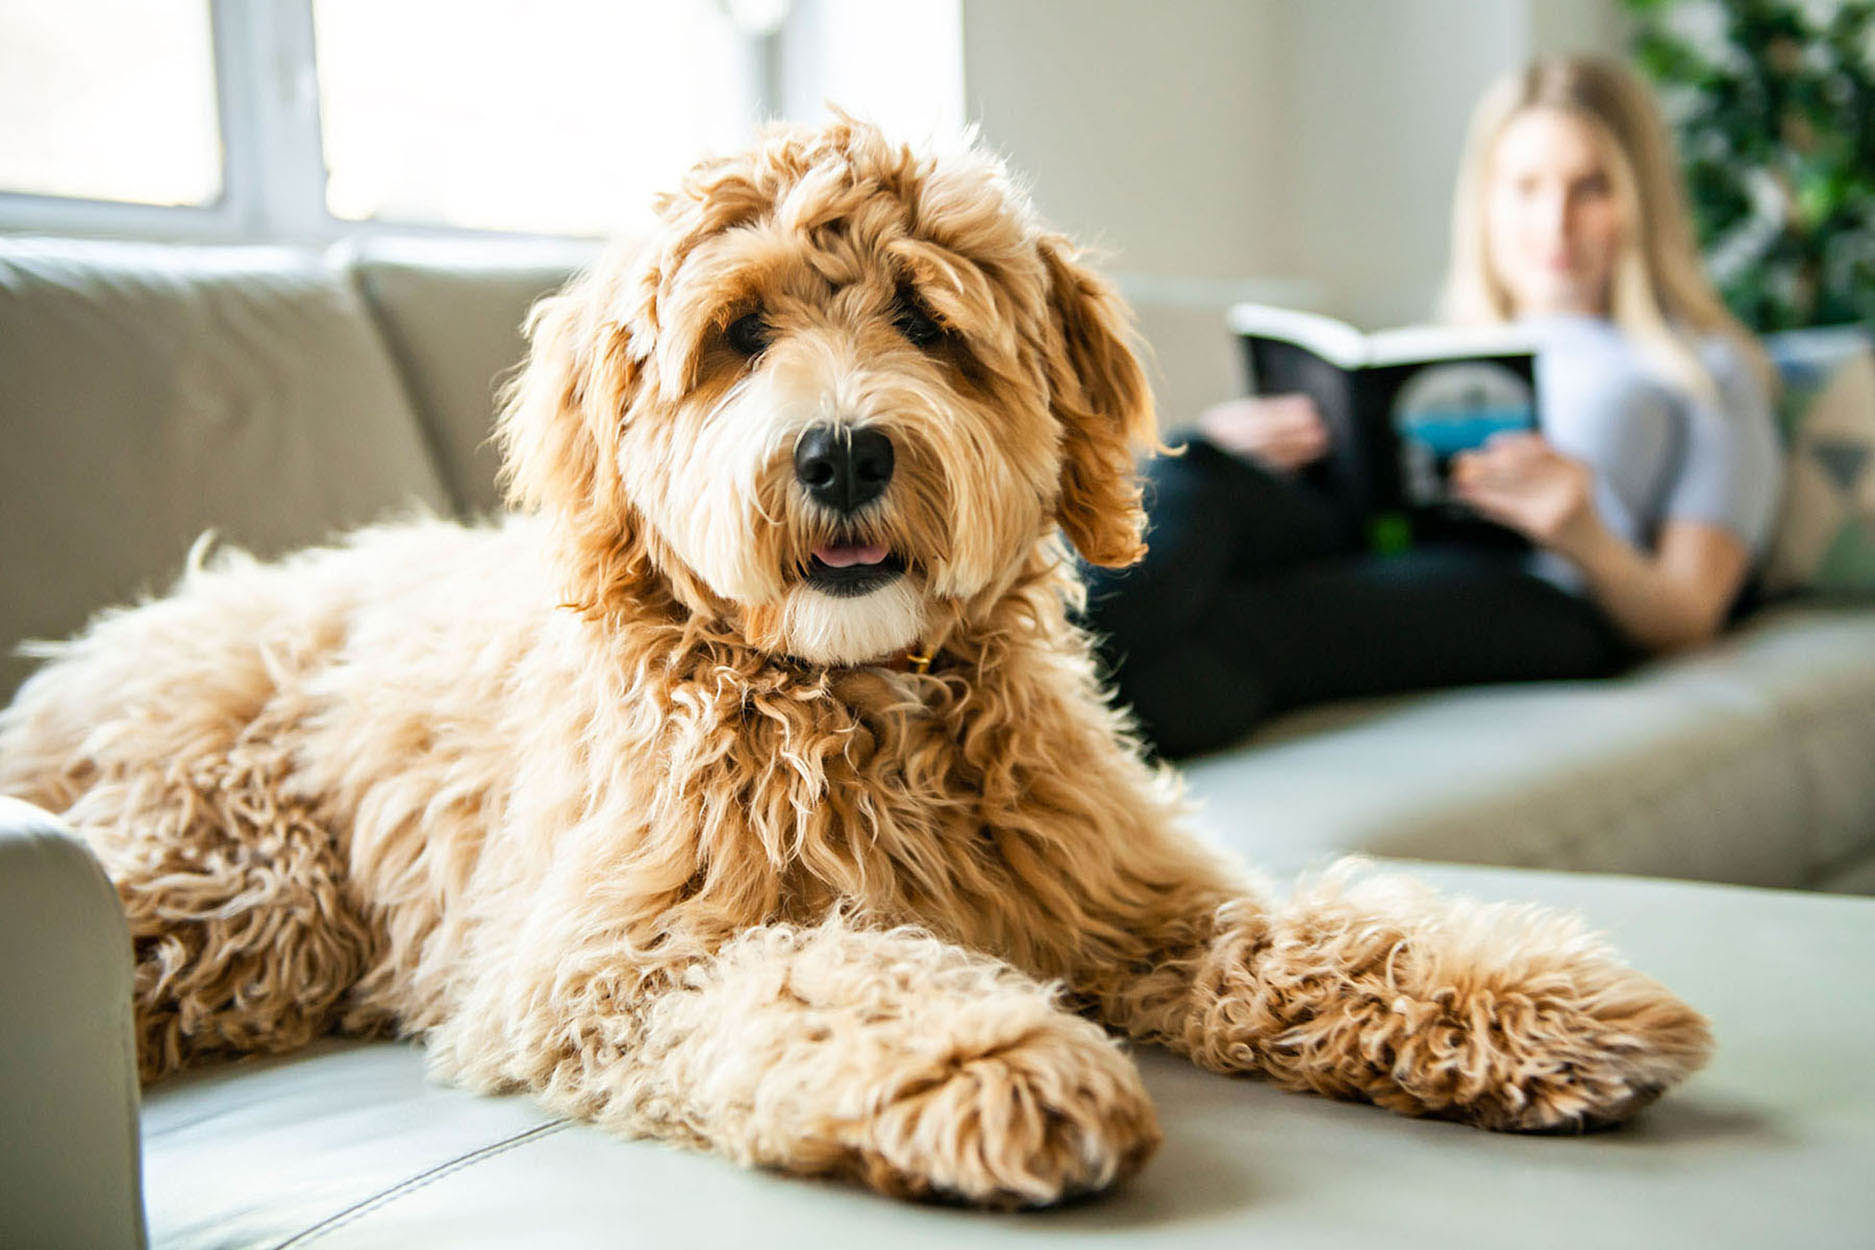 Labradoodle on couch